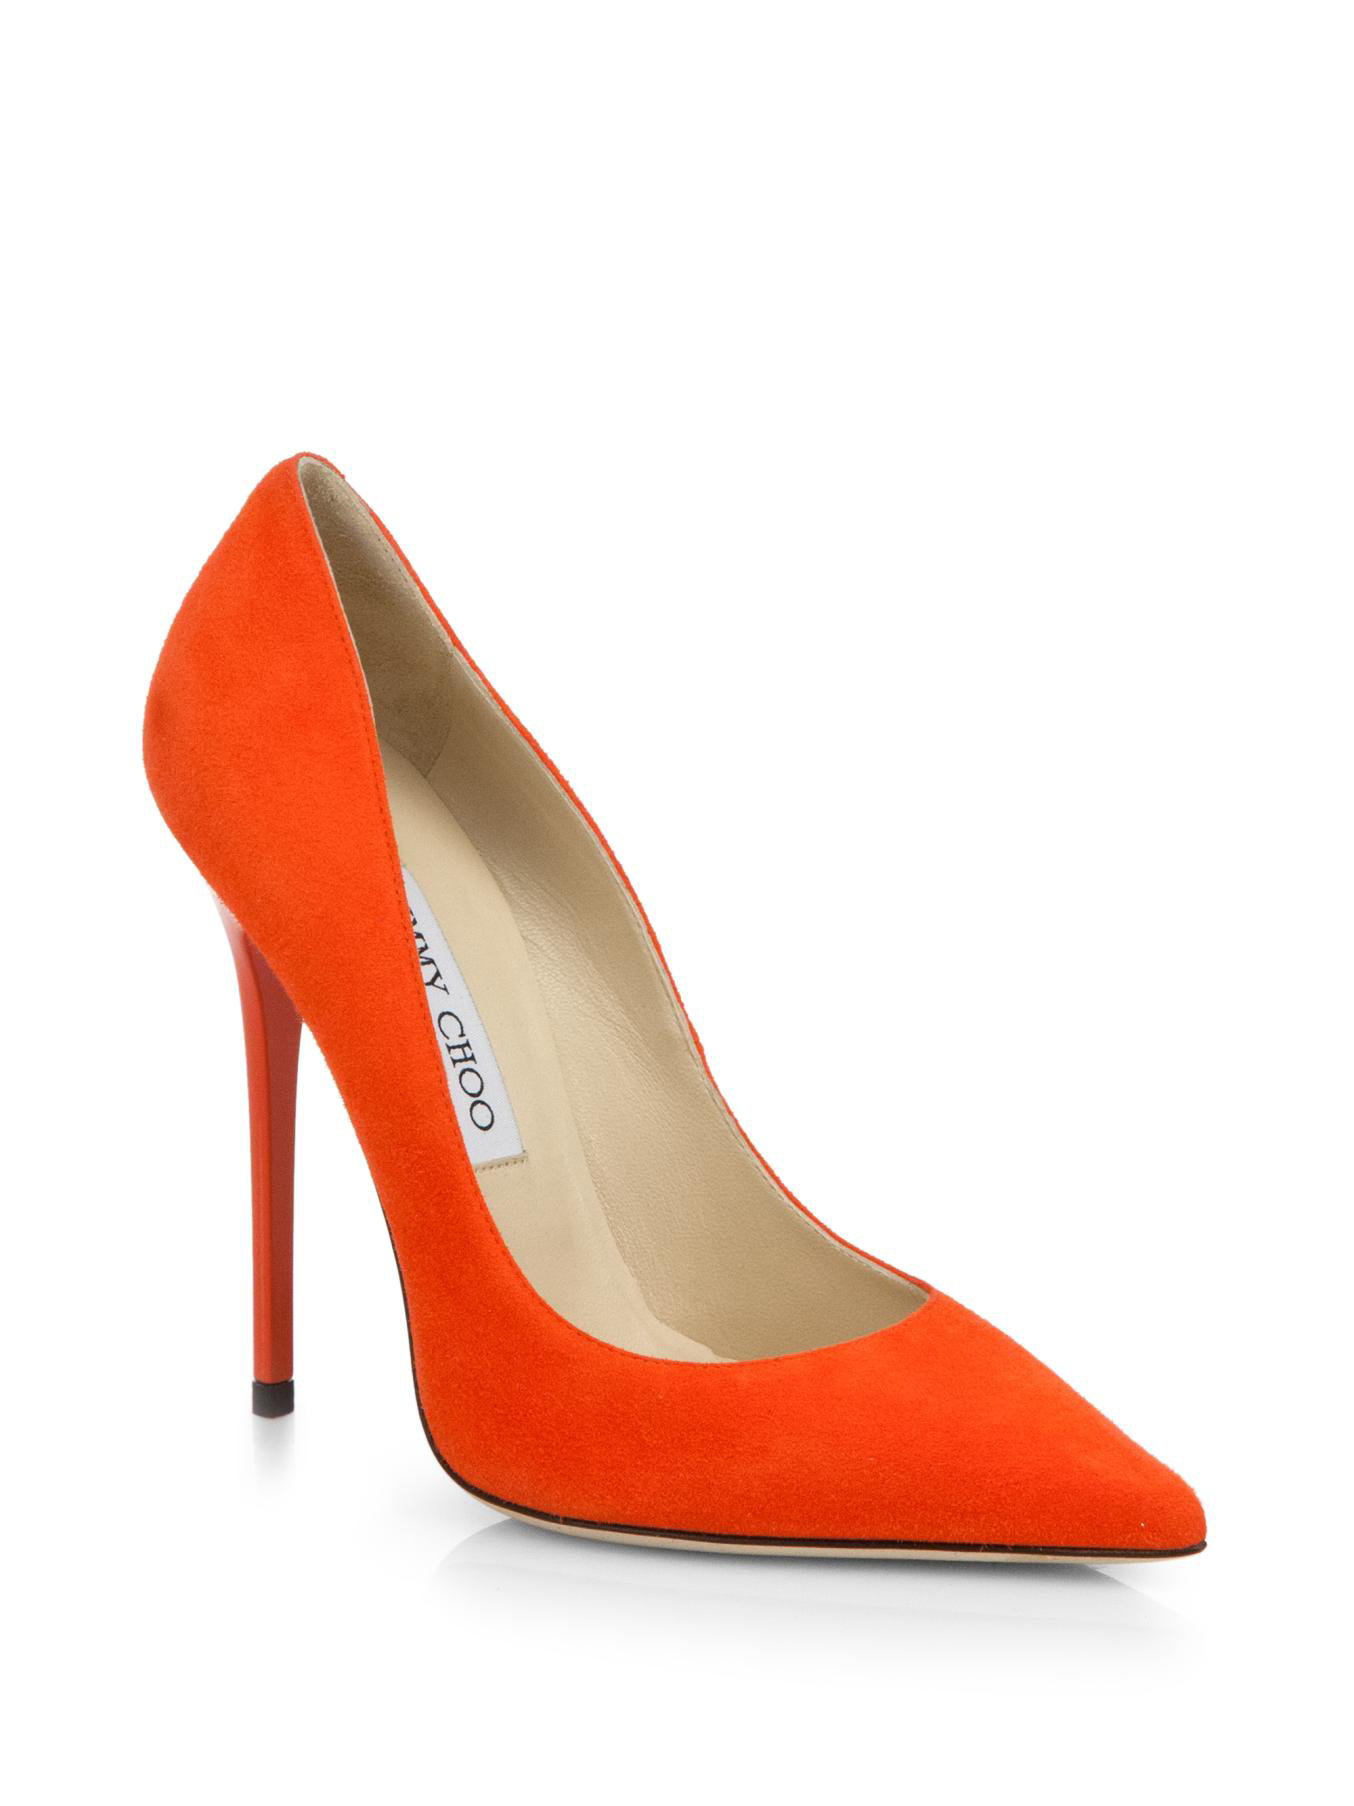 ed514c2c7ef sale jimmy choo orange pumps a04f6 41499